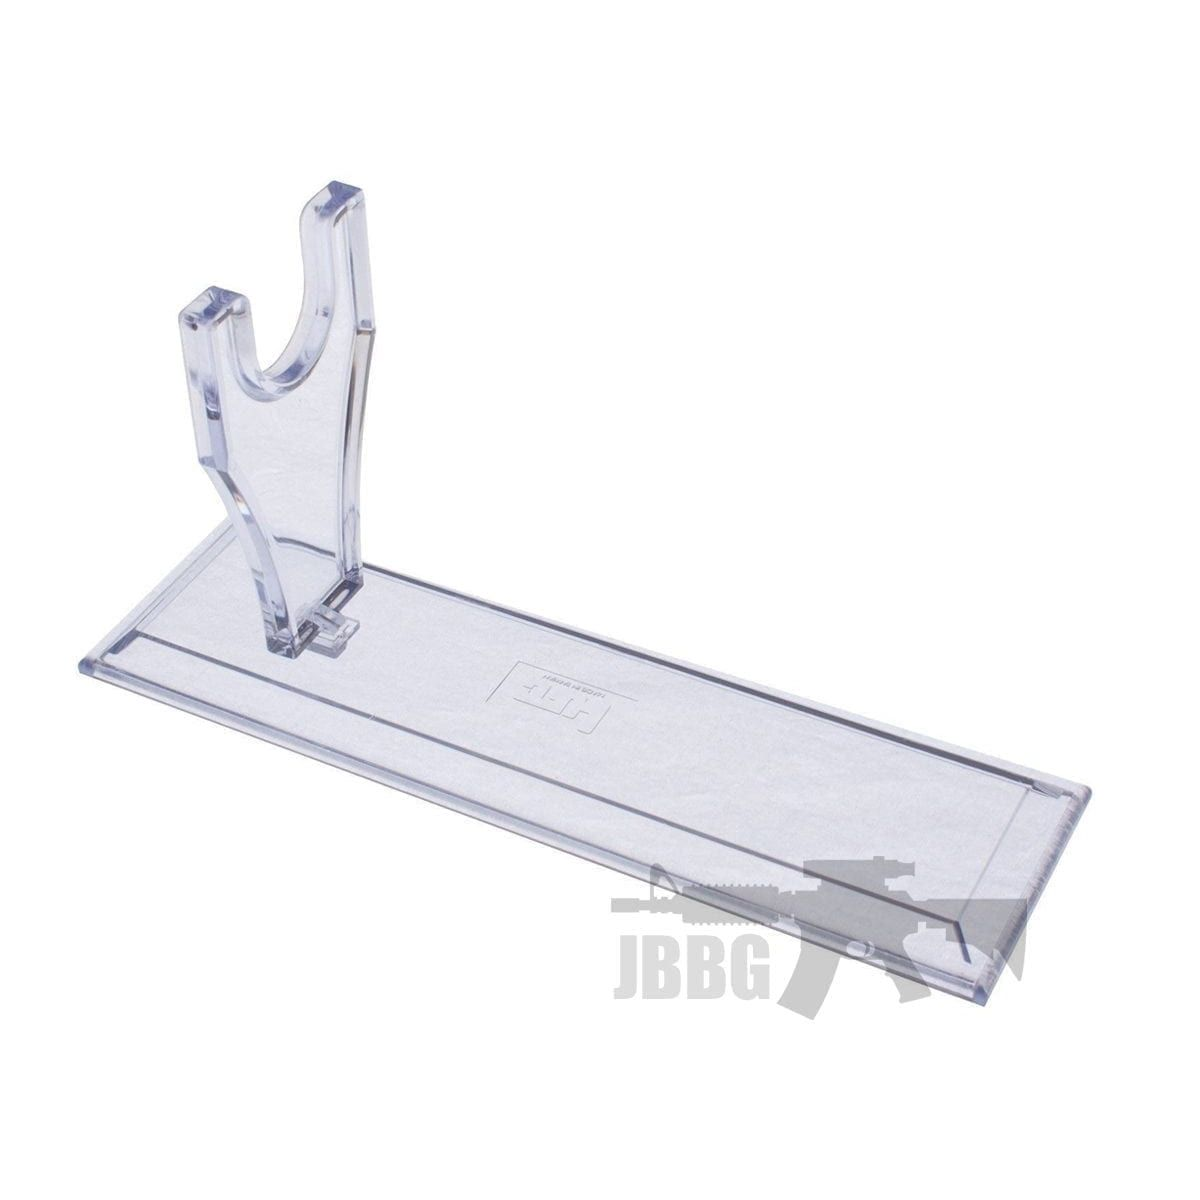 HFC Branded Good Quality Plastic Perspex Pistol Gun Display Stand